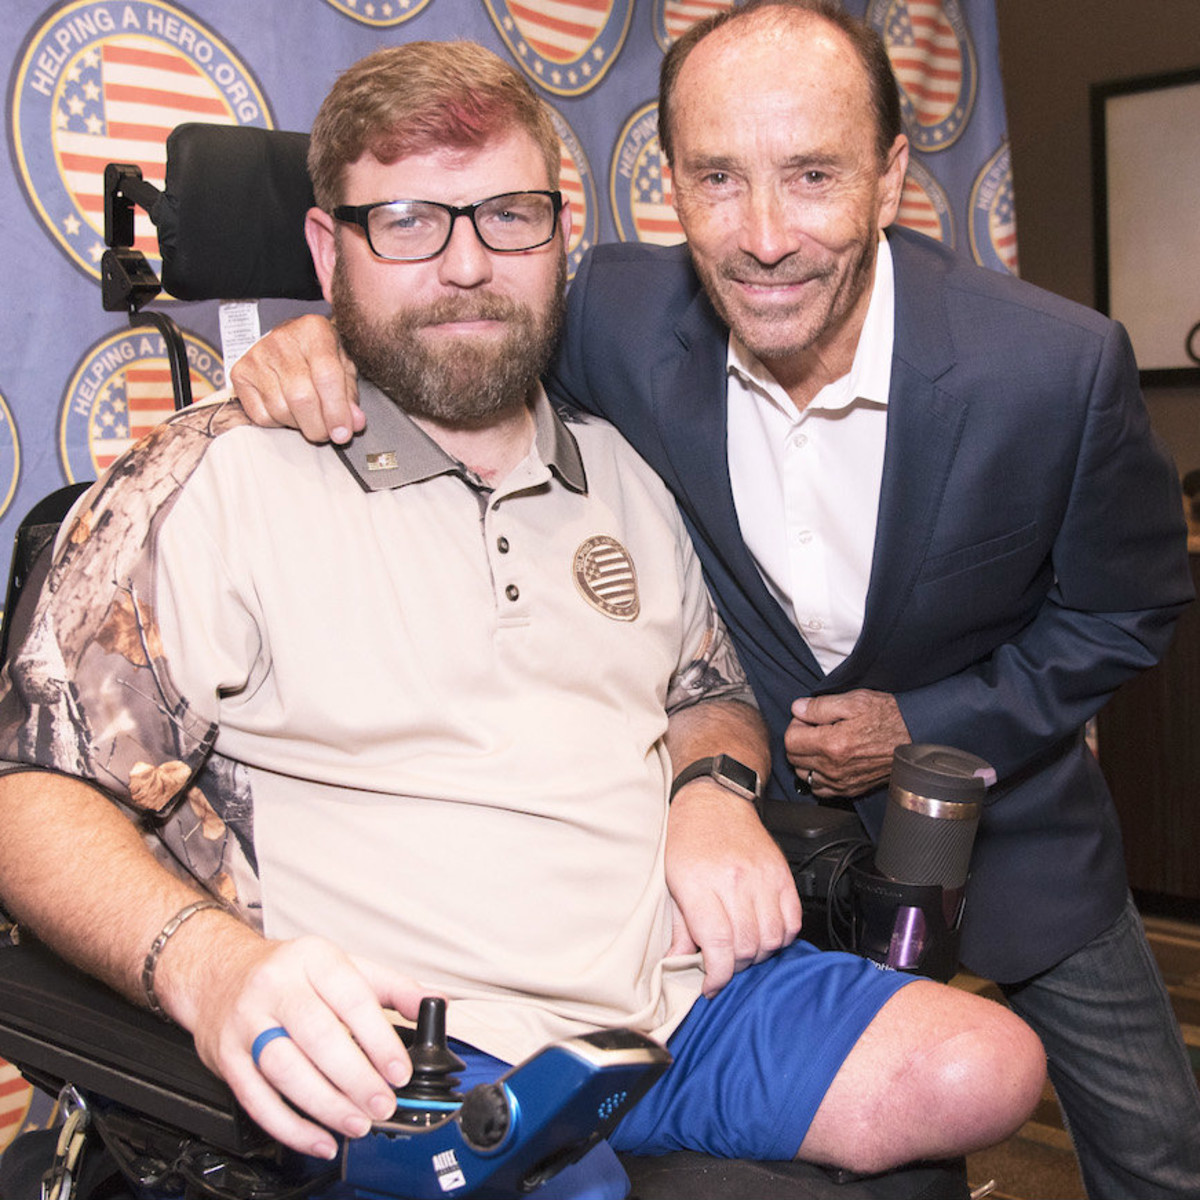 SSG Ed Matayka, Lee Greenwood